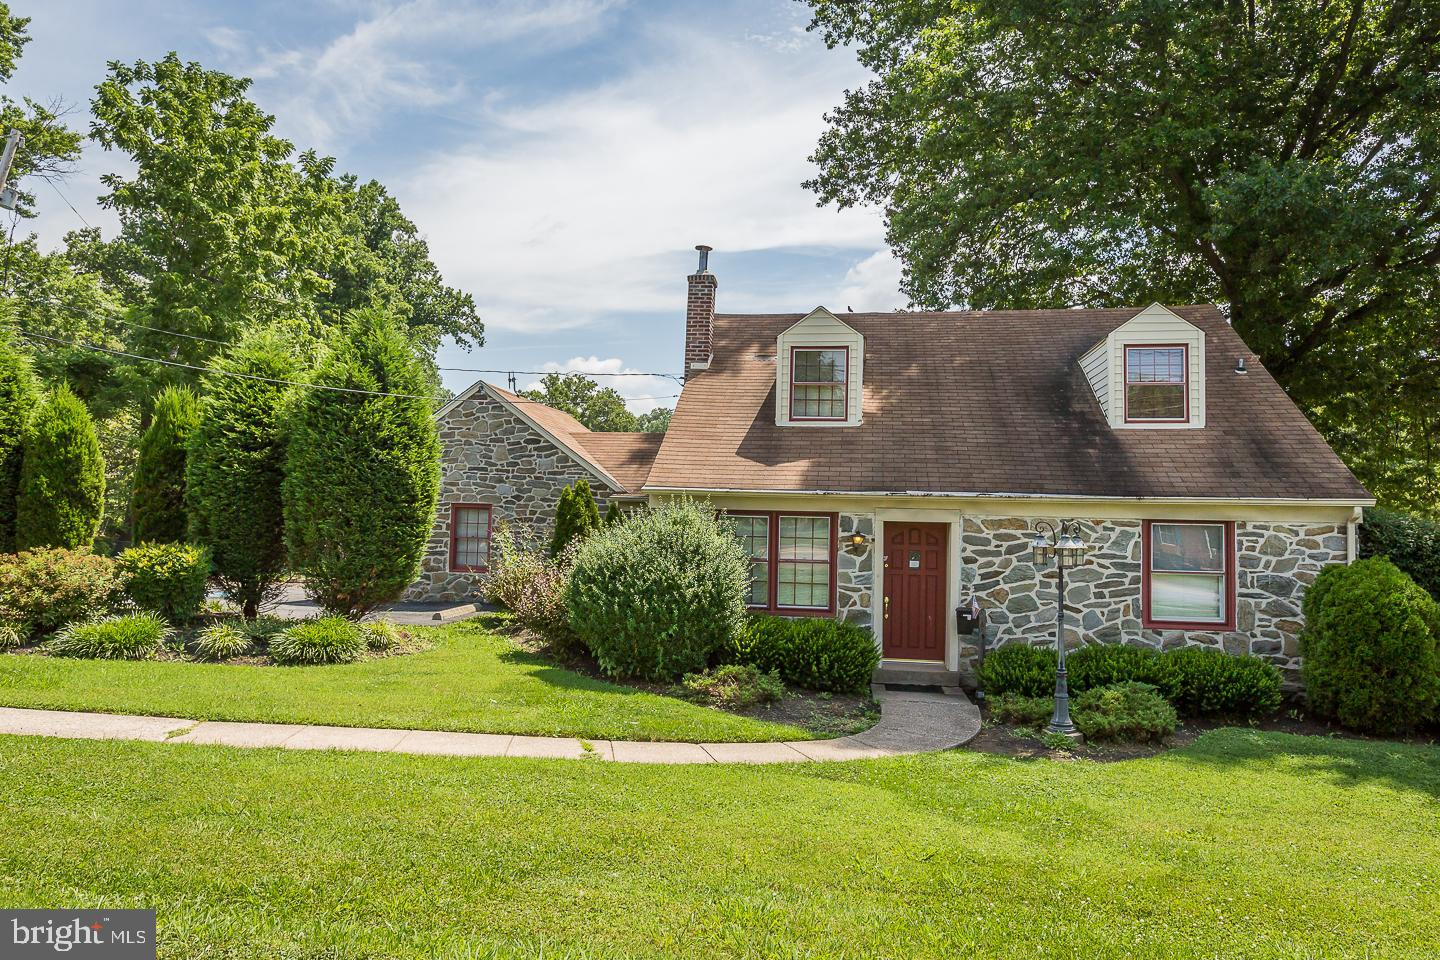 5105 TOWNSHIP LINE ROAD, DREXEL HILL, PA 19026